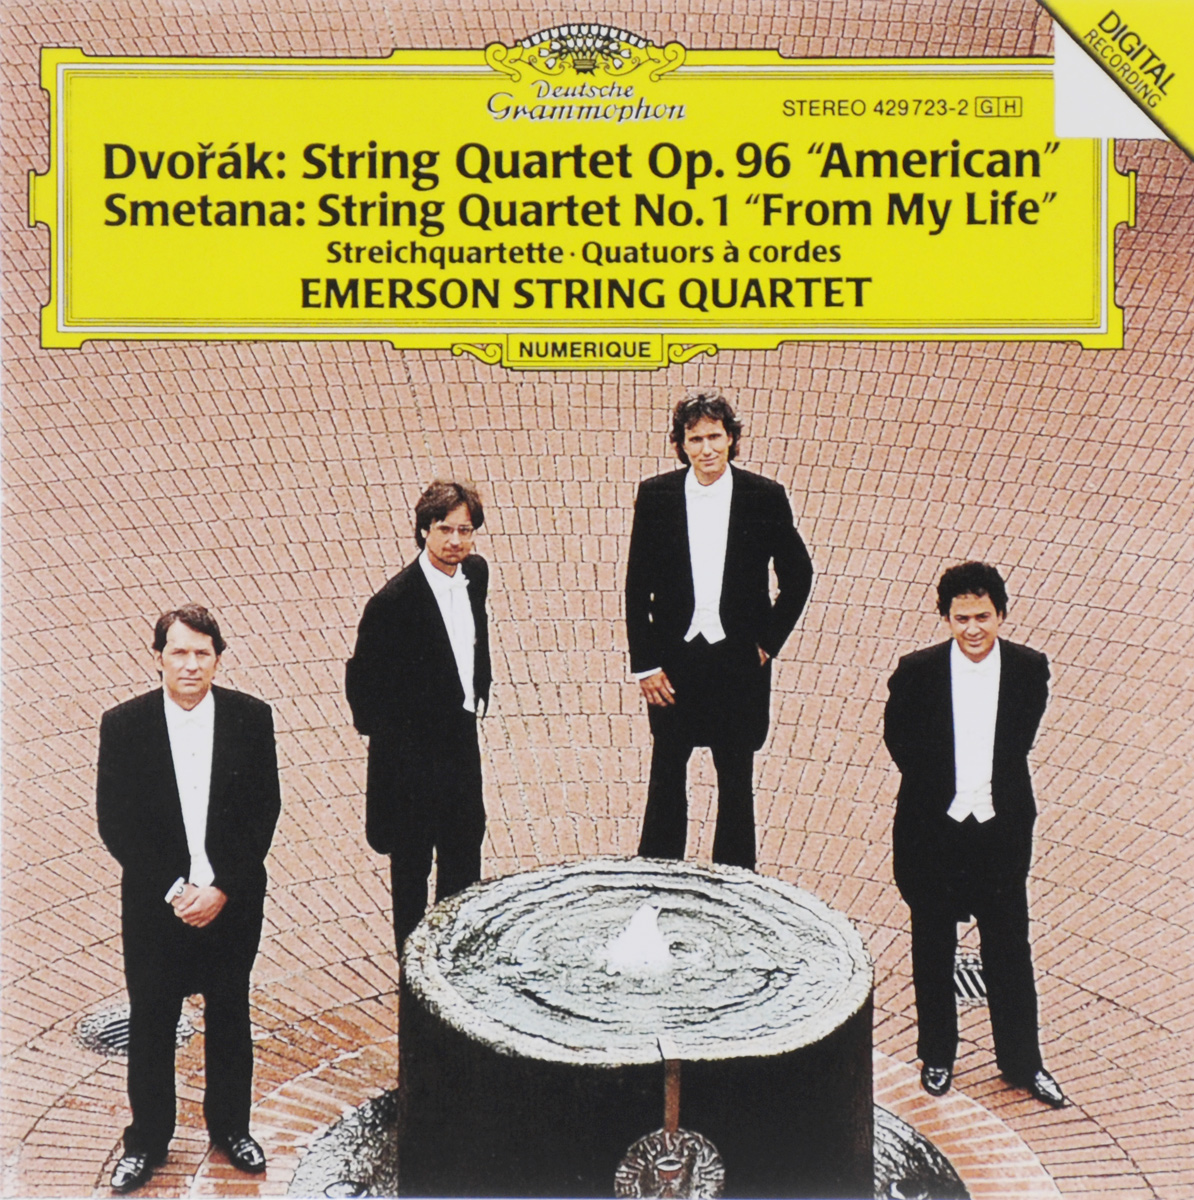 Emerson String Quartet Emerson String Quartet. String Quartet Op. 96 American / String Quartet No. 1 From My Life hot sale google cardboard vr case 5plus pk bobovr z4 vr box 2 0 vr virtual reality 3d glasses wireless bluetooth mouse gamepad